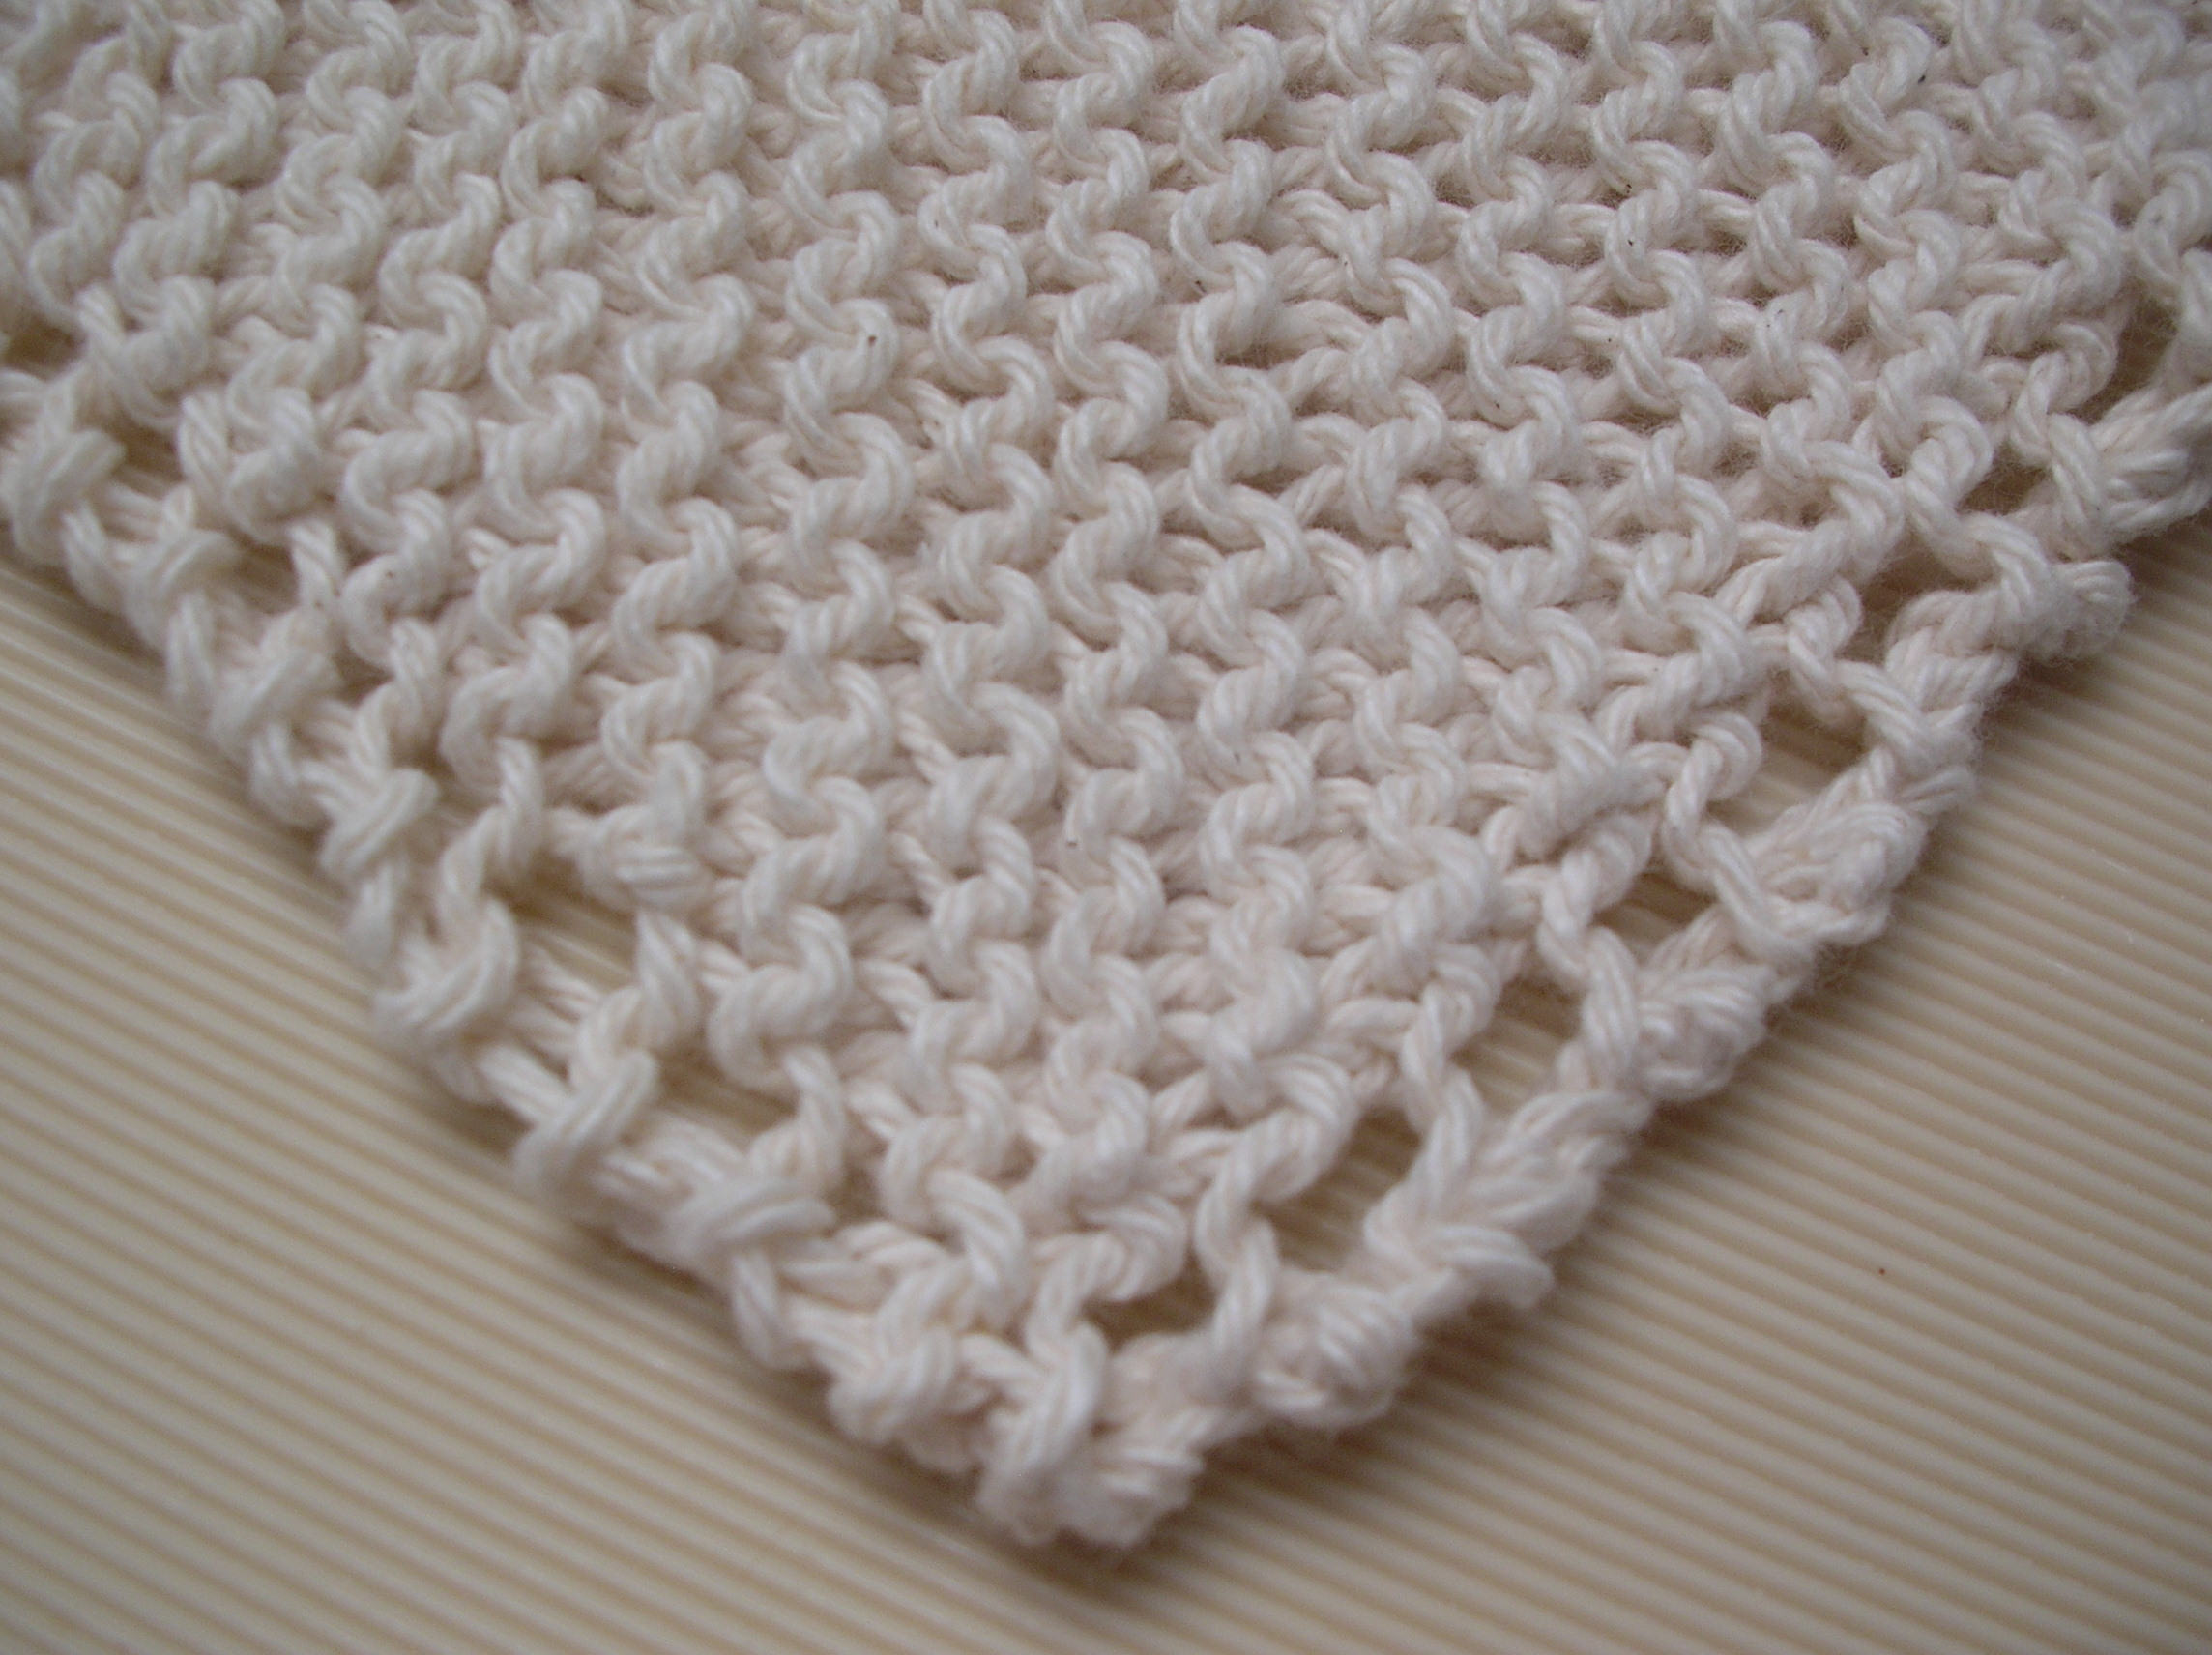 Free Crochet Patterns For Cotton Thread : 34 New Crochet Dishcloth Patterns For Free ? Patterns Hub